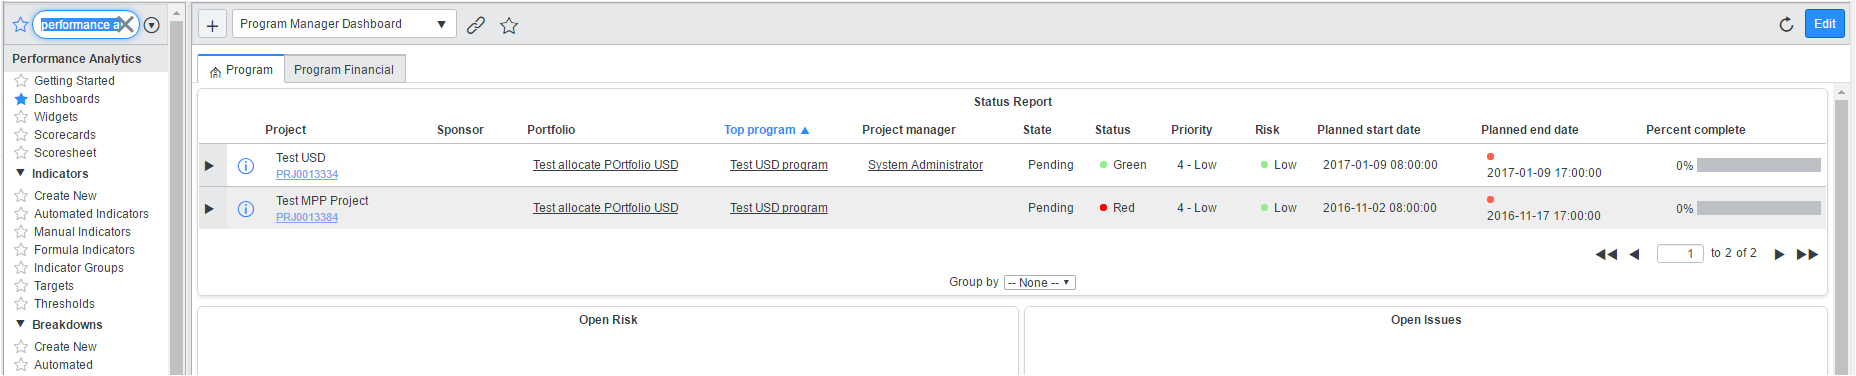 How Can I Remove Content From My Project Manager Dashboard It